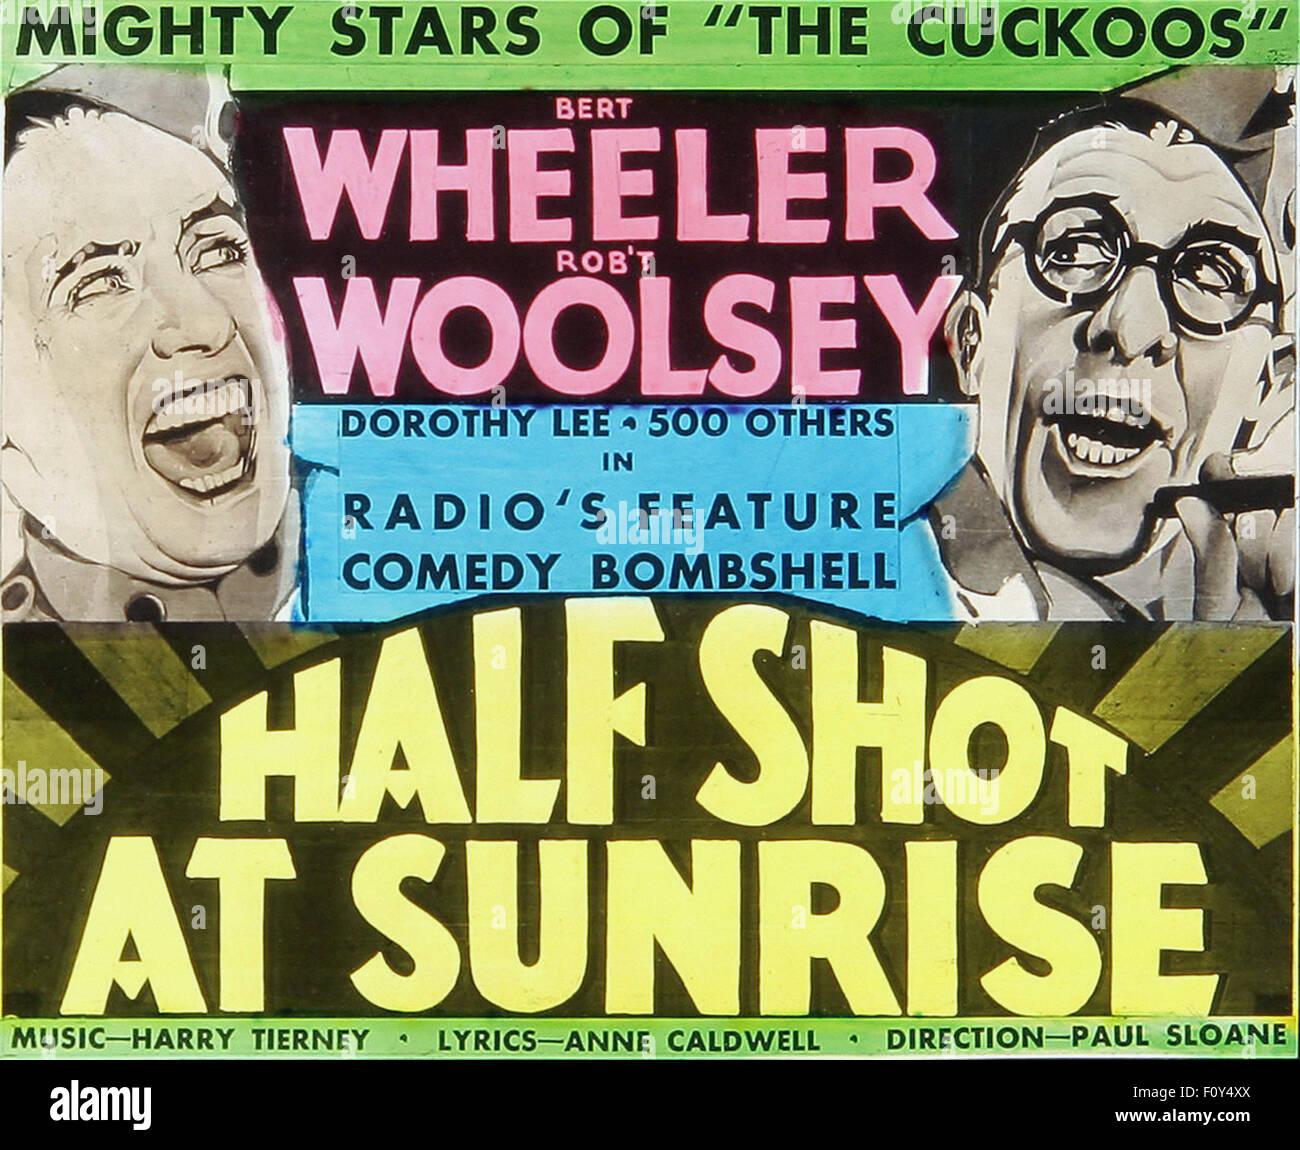 Half Shot at Sunrise - 06  - Movie Poster - Stock Image